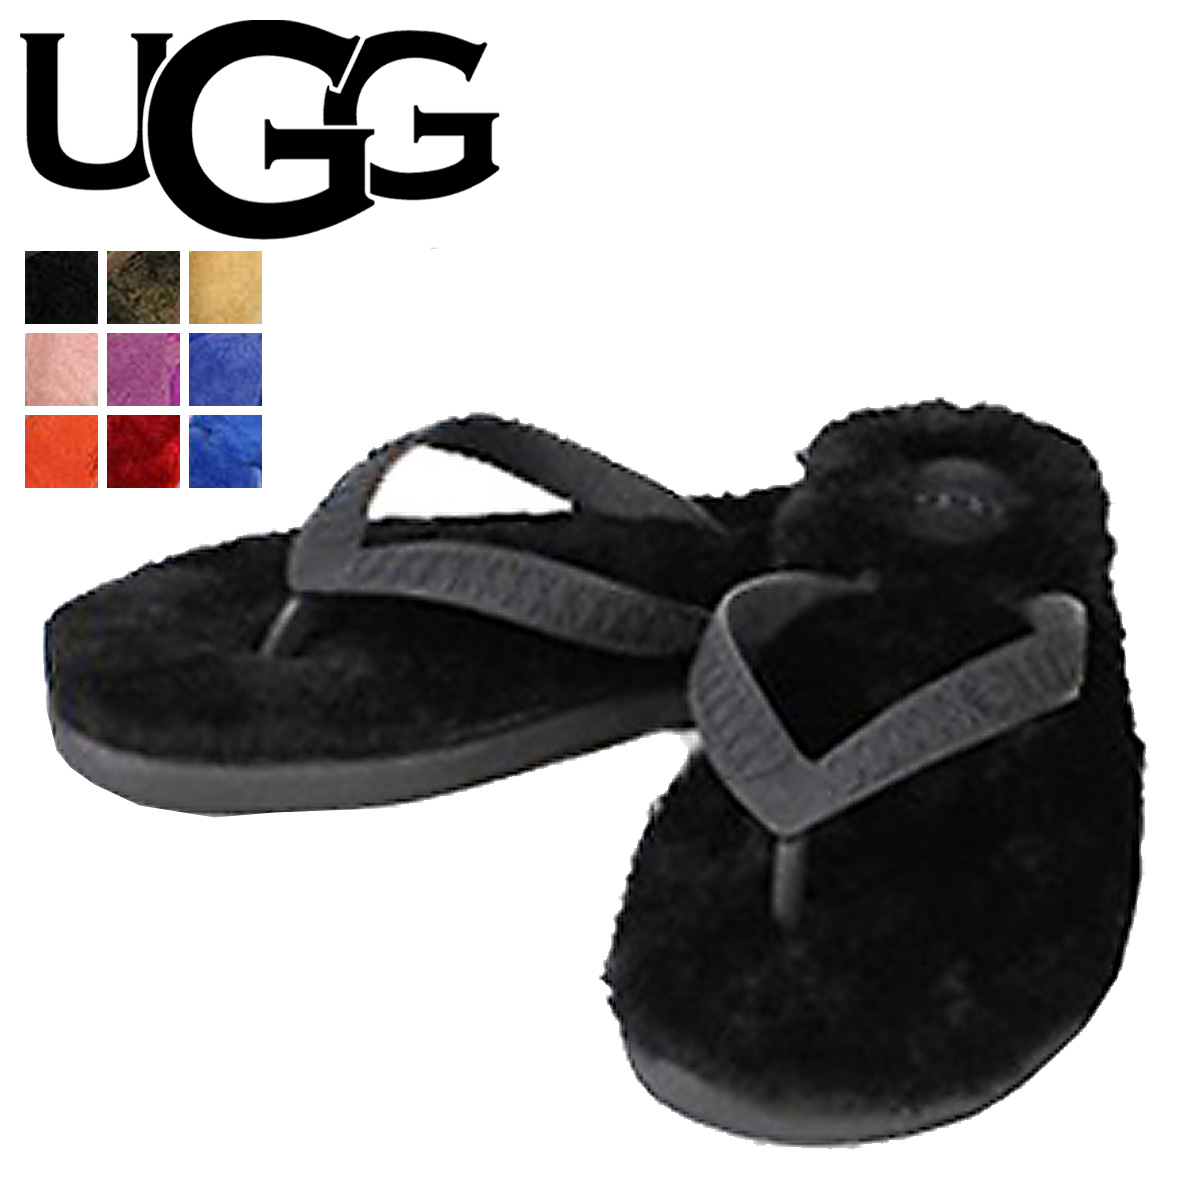 Fluffy Sandals 1684, UGG UGG women's FLUFFIE WOMENS ladies Shearling Sheepskin